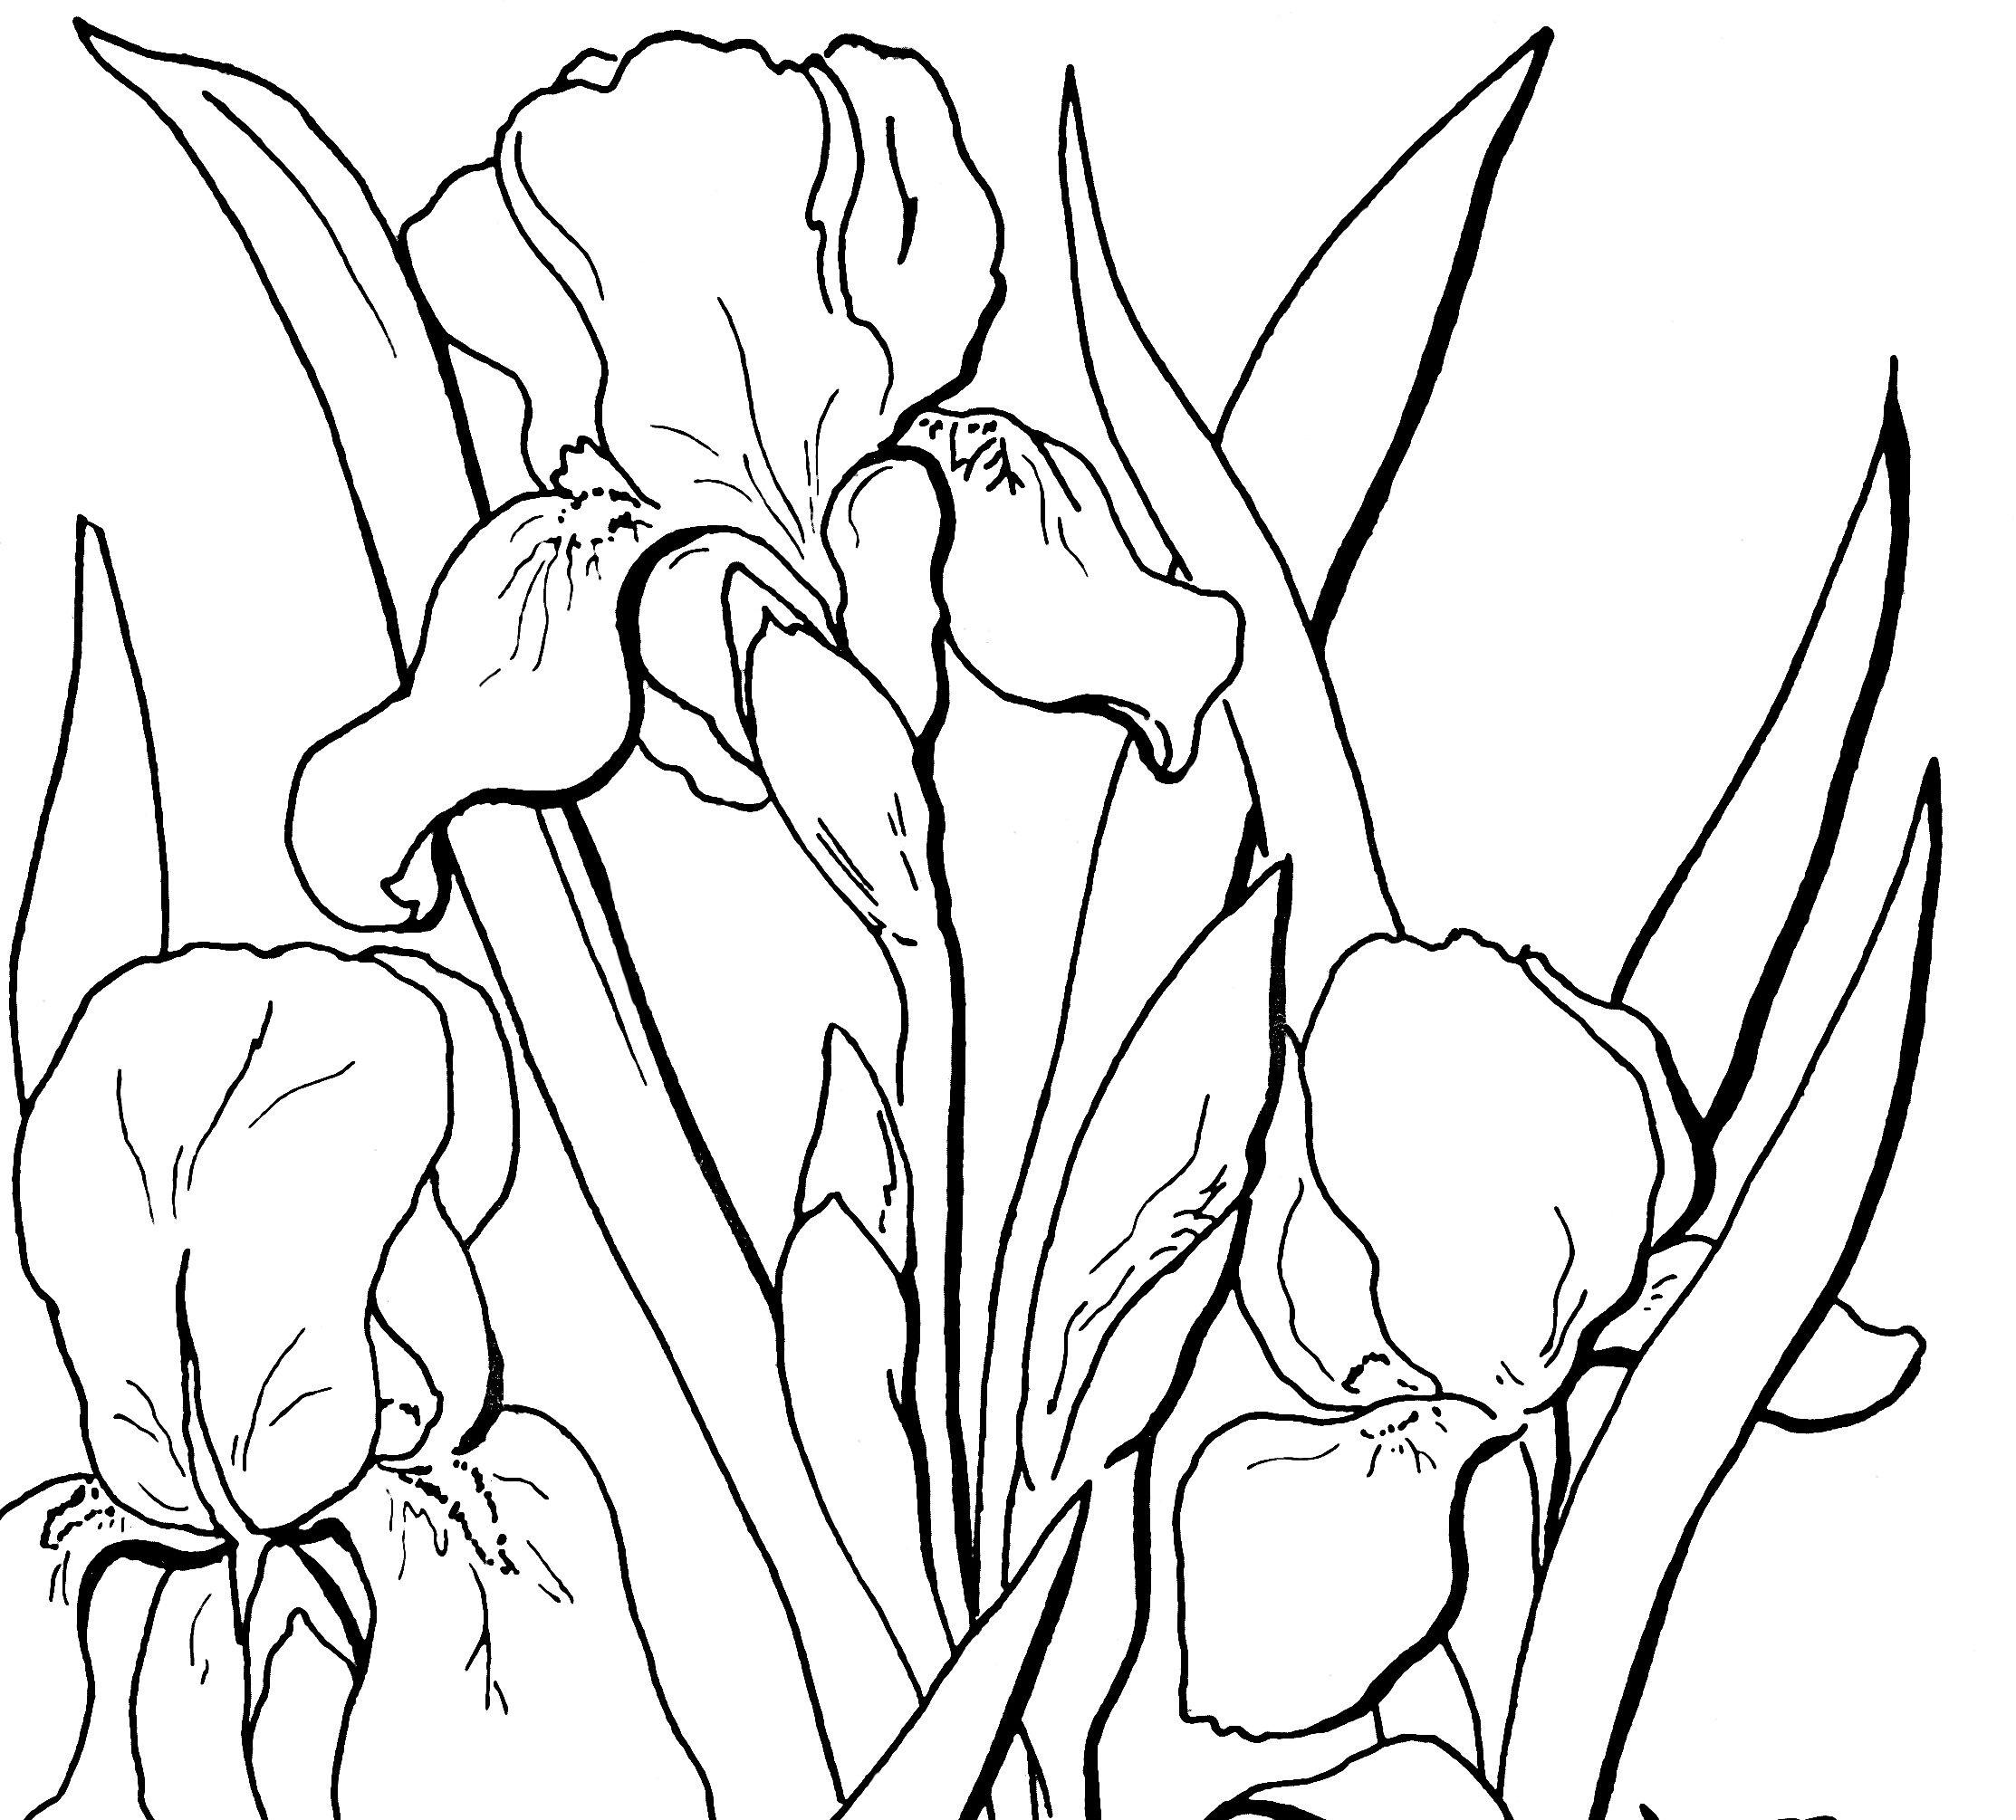 free flower coloring pages for adults flower coloring pages for adults best coloring pages for pages coloring adults flower for free